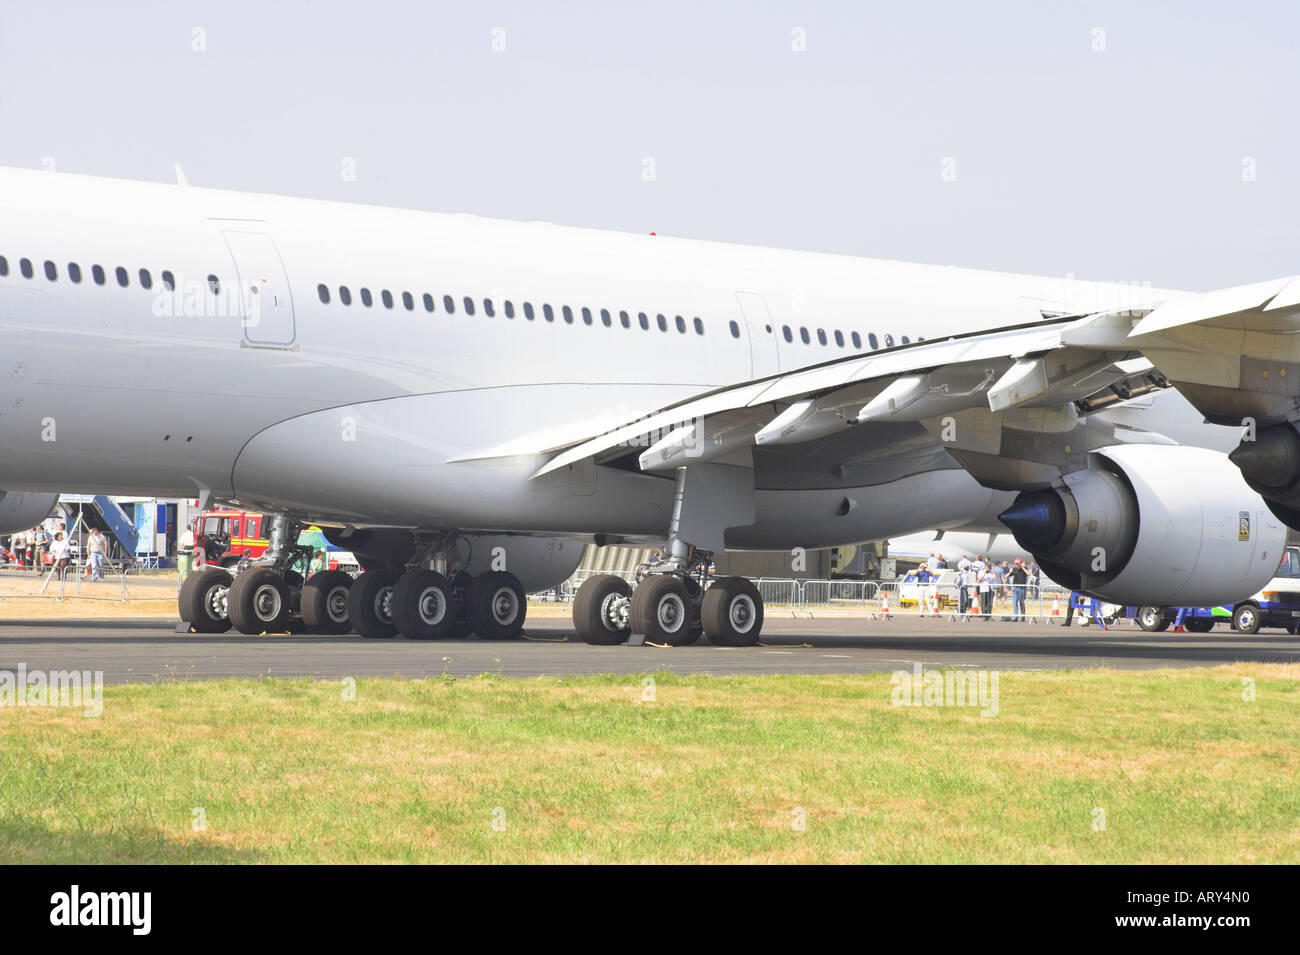 Airbus A340 600 mid fuselage and undercarriage - Stock Image